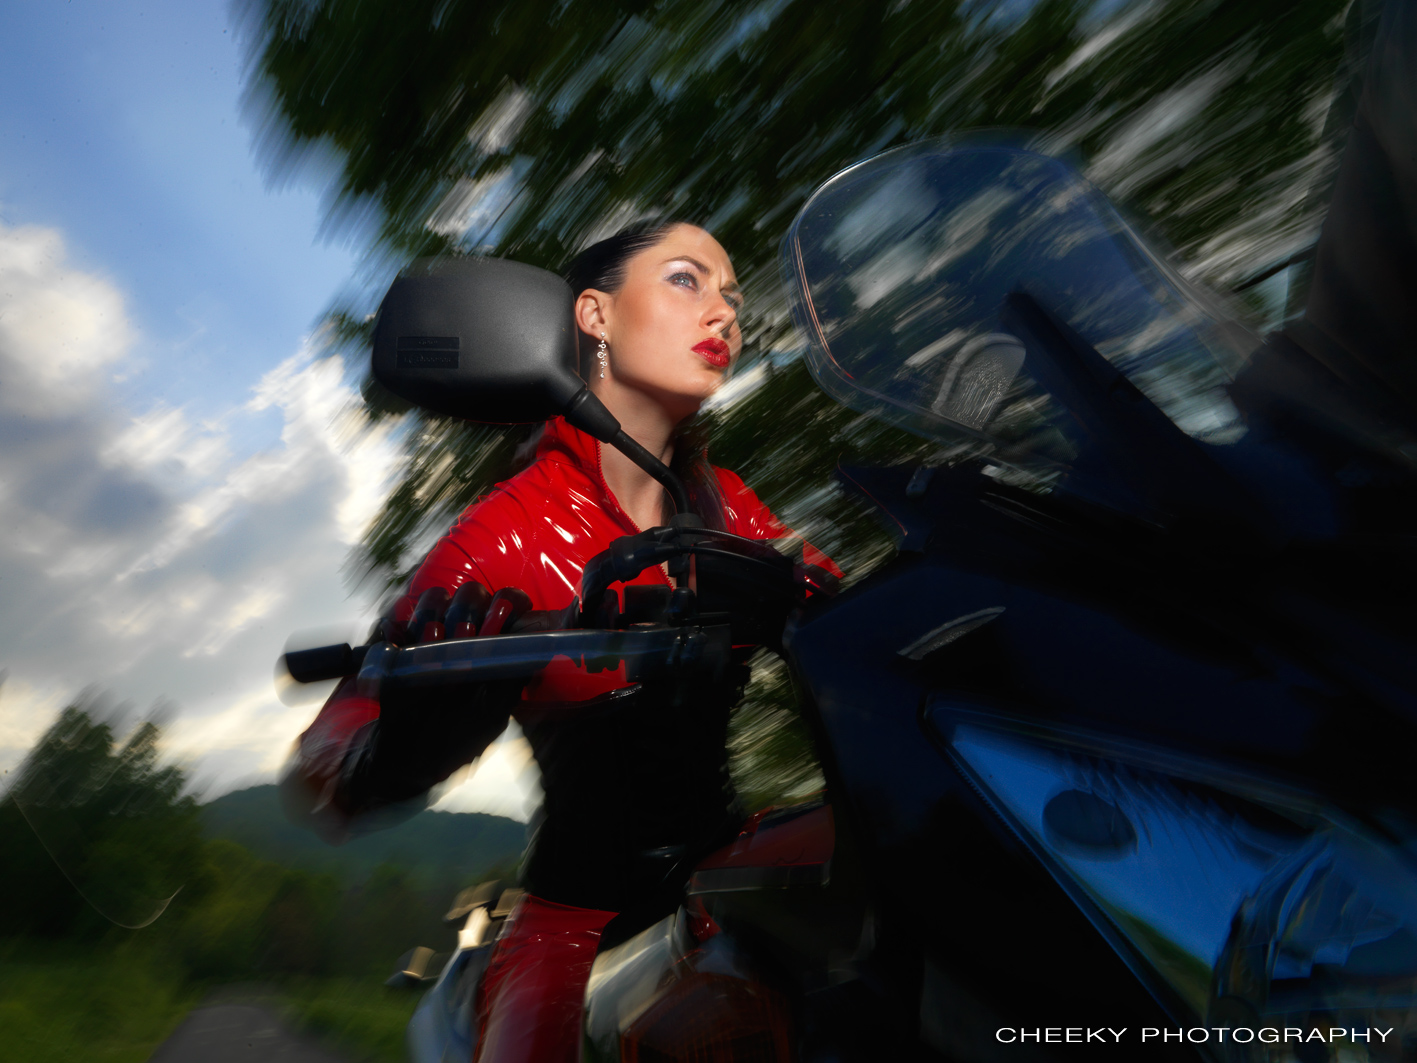 Madame Sarka from OWK / CZ having fun on her motorcycle